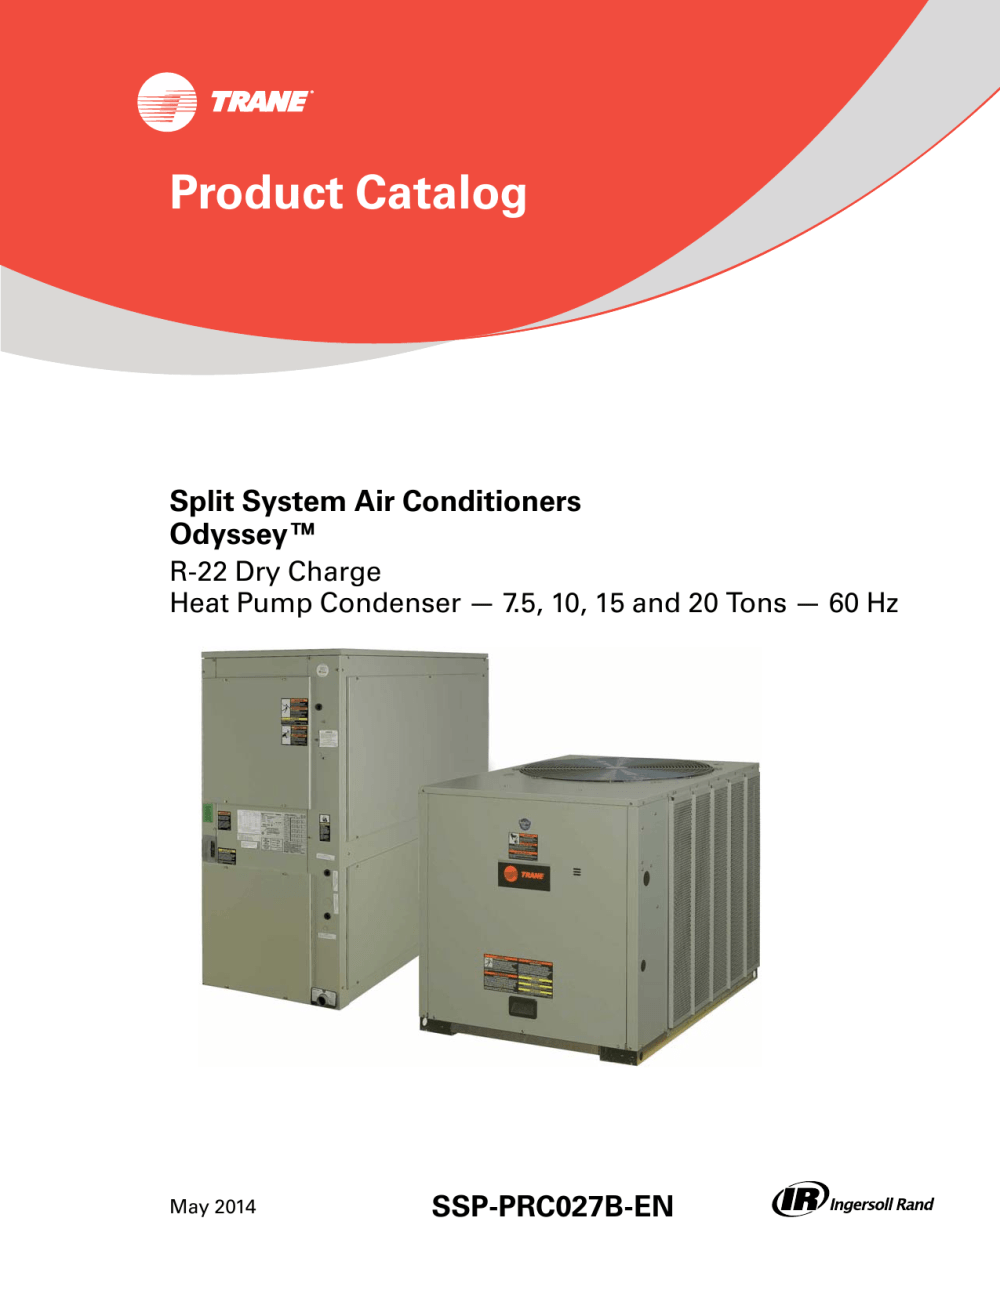 medium resolution of  wiring schematic tw on heating and air conditioning trane commercial hvac on trane odyssey 6 to 25 tons catalogue r 22 dry charge product catalog on